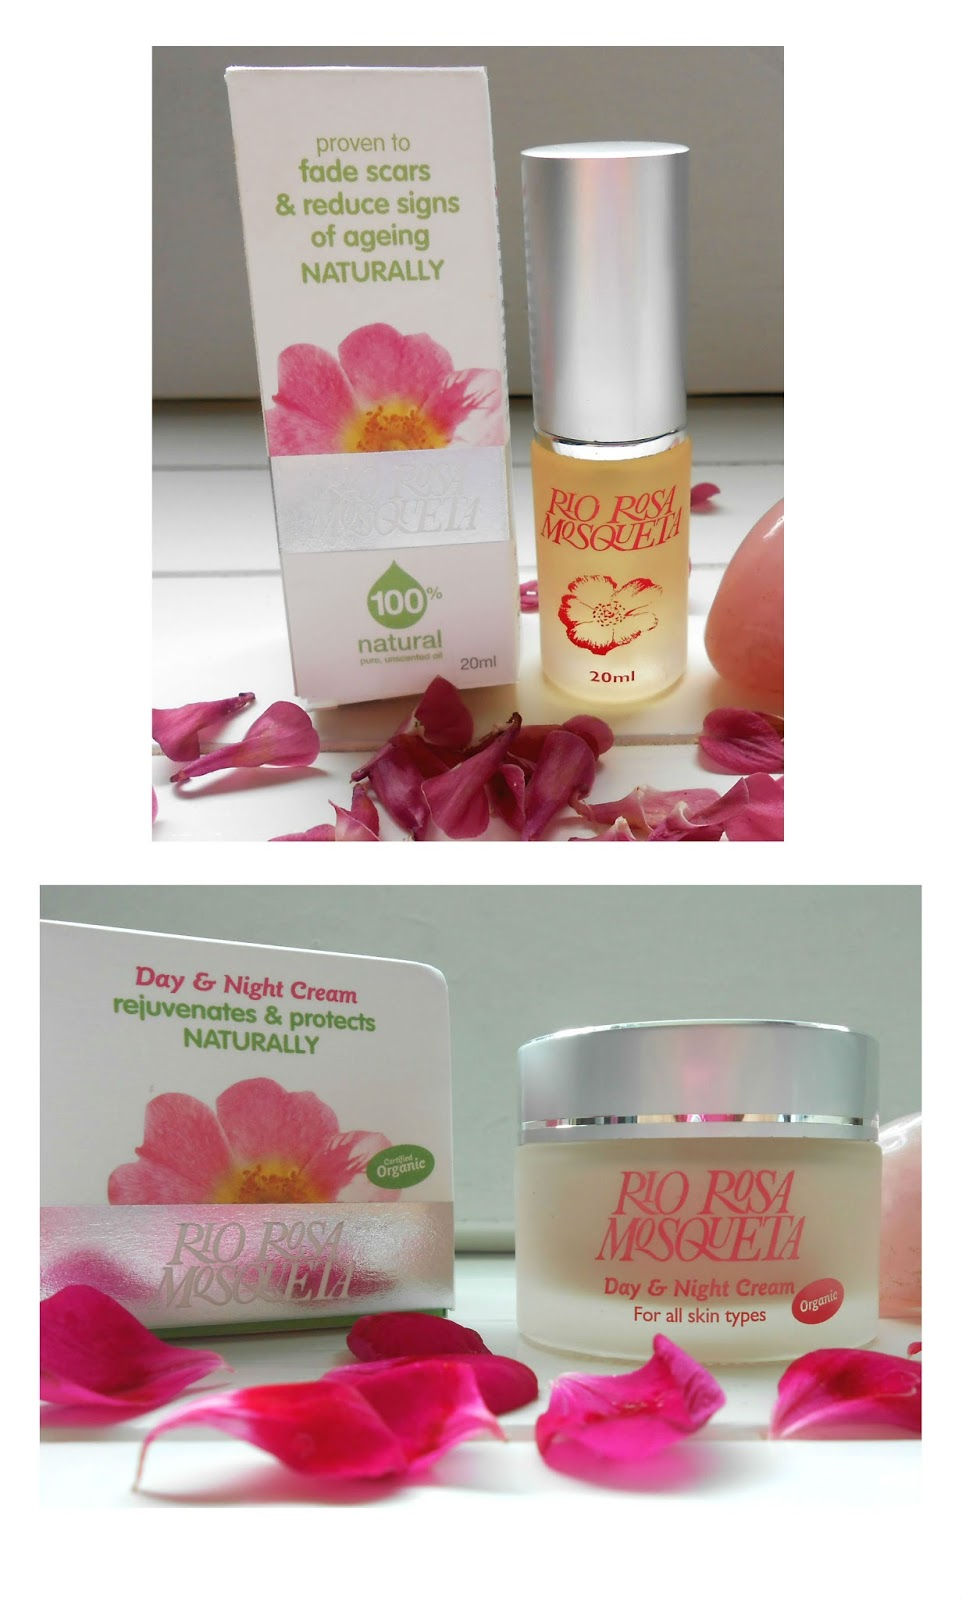 Rio Rosa Mosqueta Anti-Ageing Day & Night Cream & Rosehip Oil